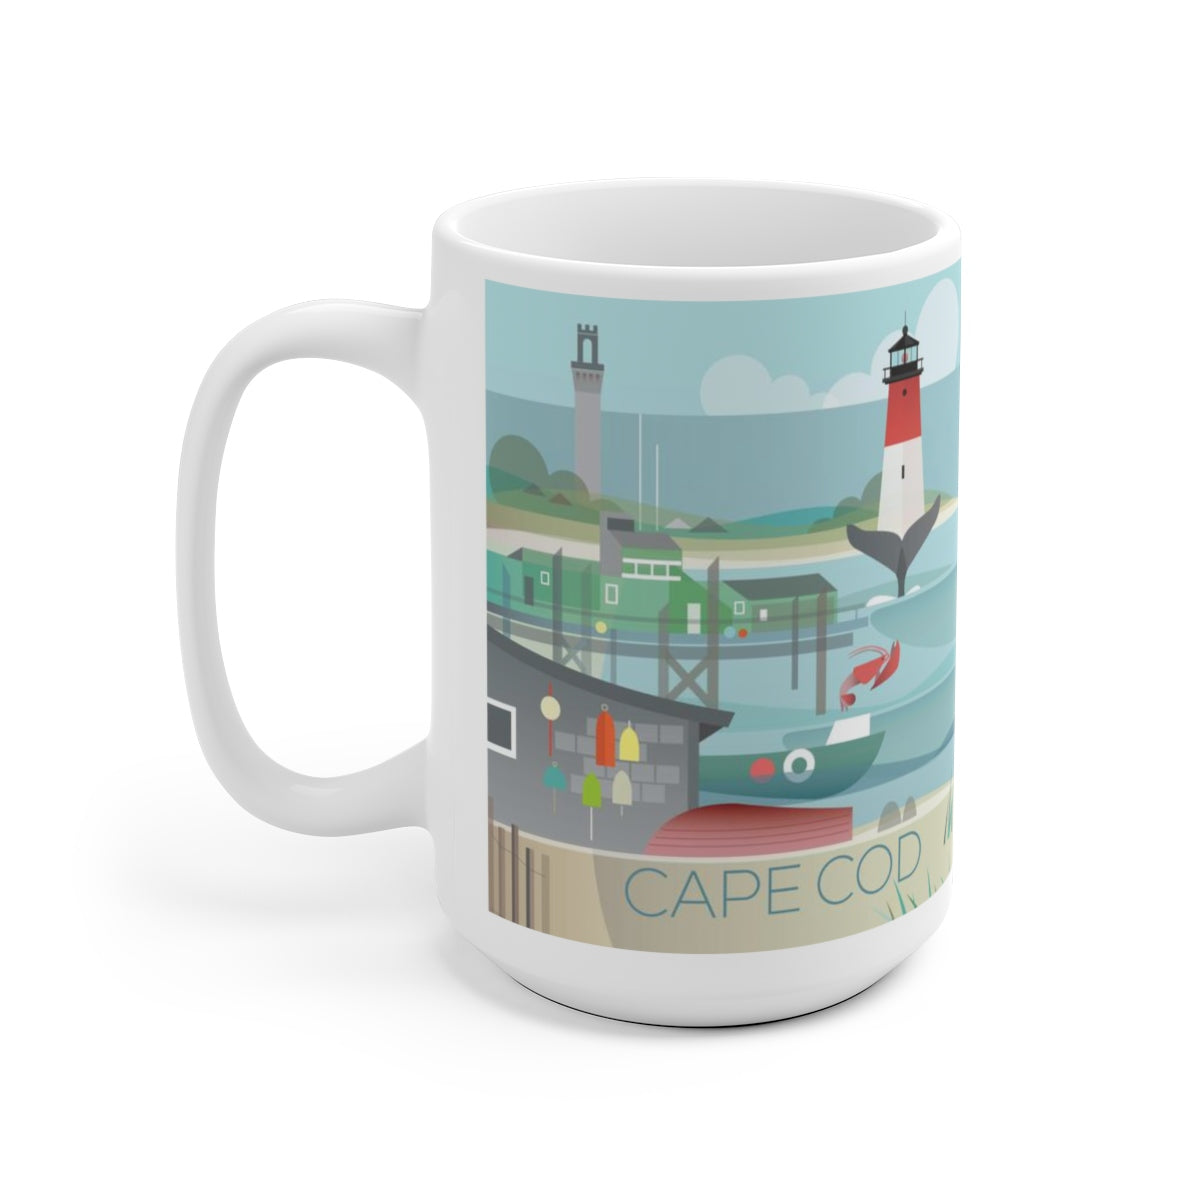 CAPE COD 15 OZ CERAMIC MUG